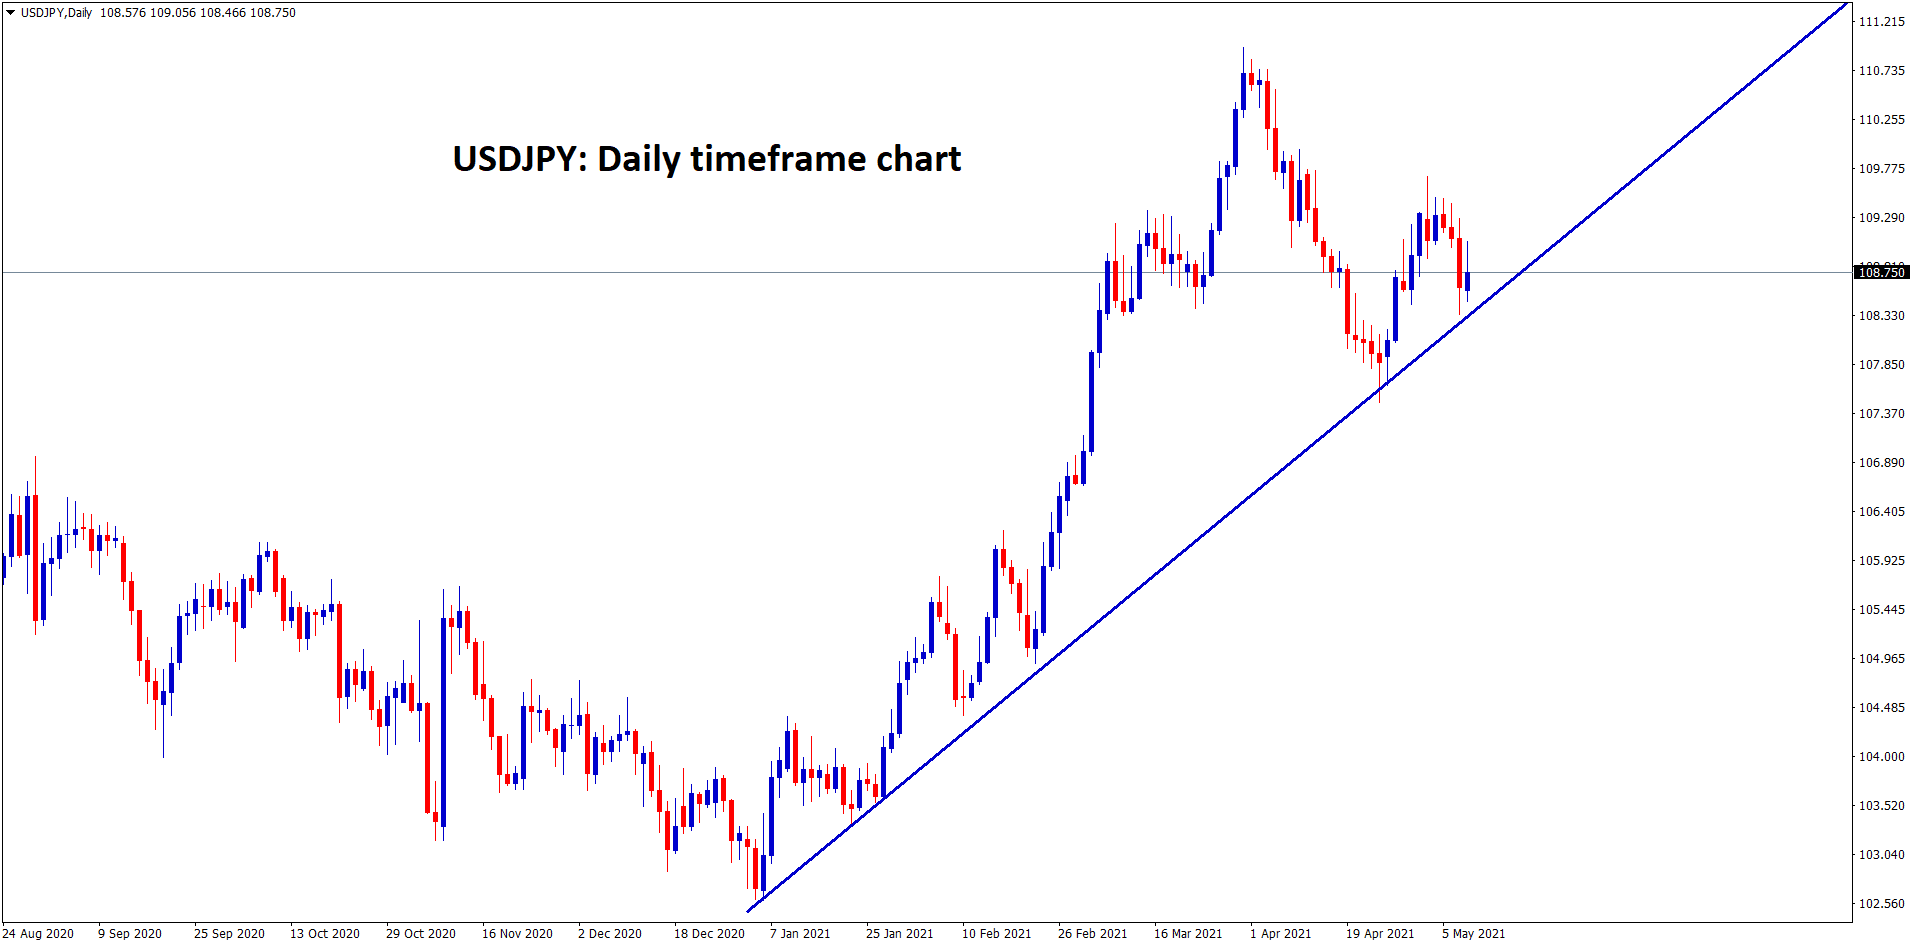 USDJPY moving in an uptrend both USD and JPY is weaker now